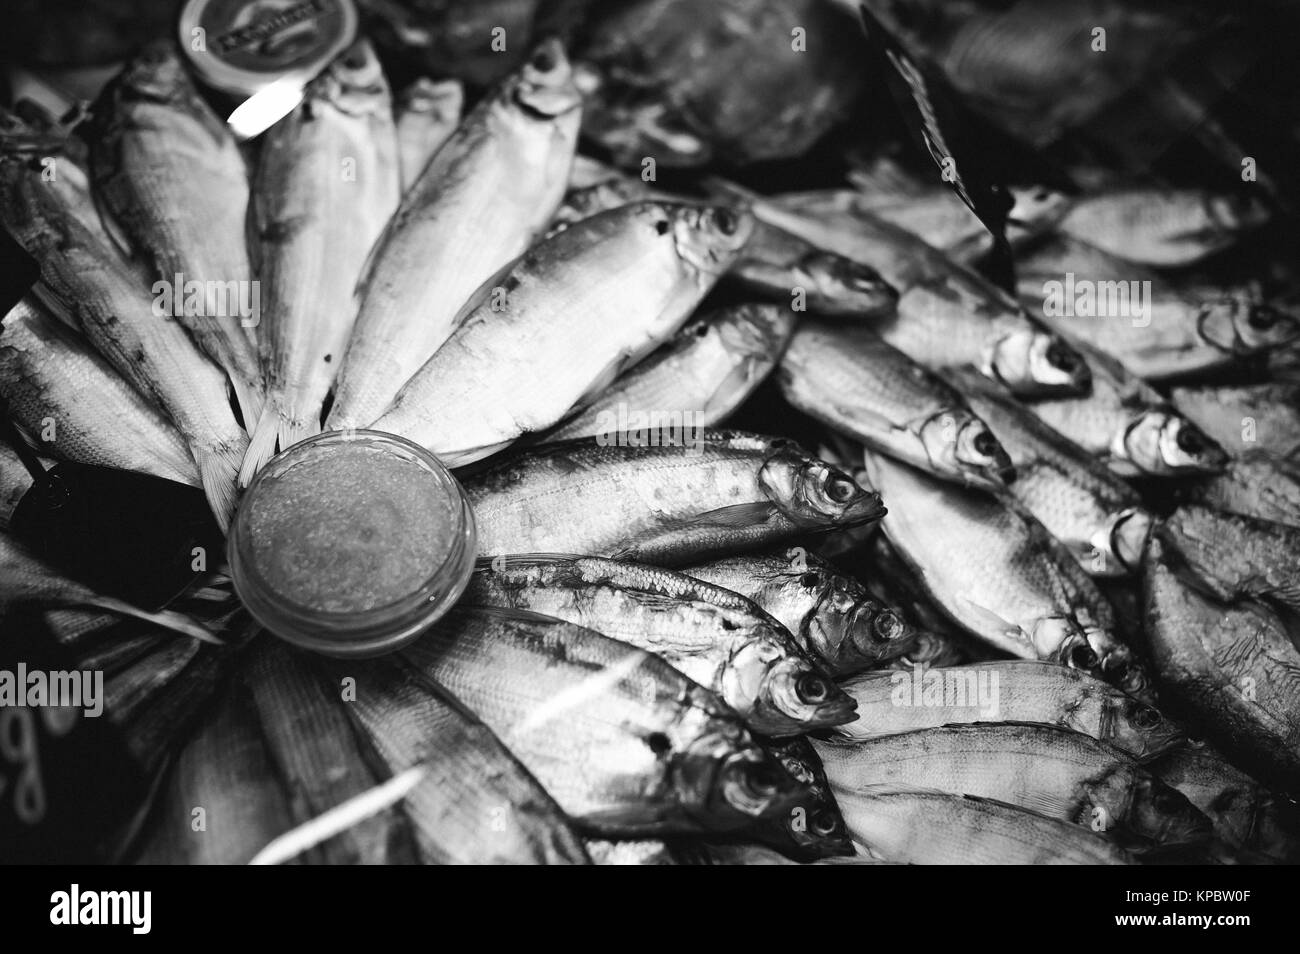 fresh fish on the store shelves, diet food seafood - Stock Image